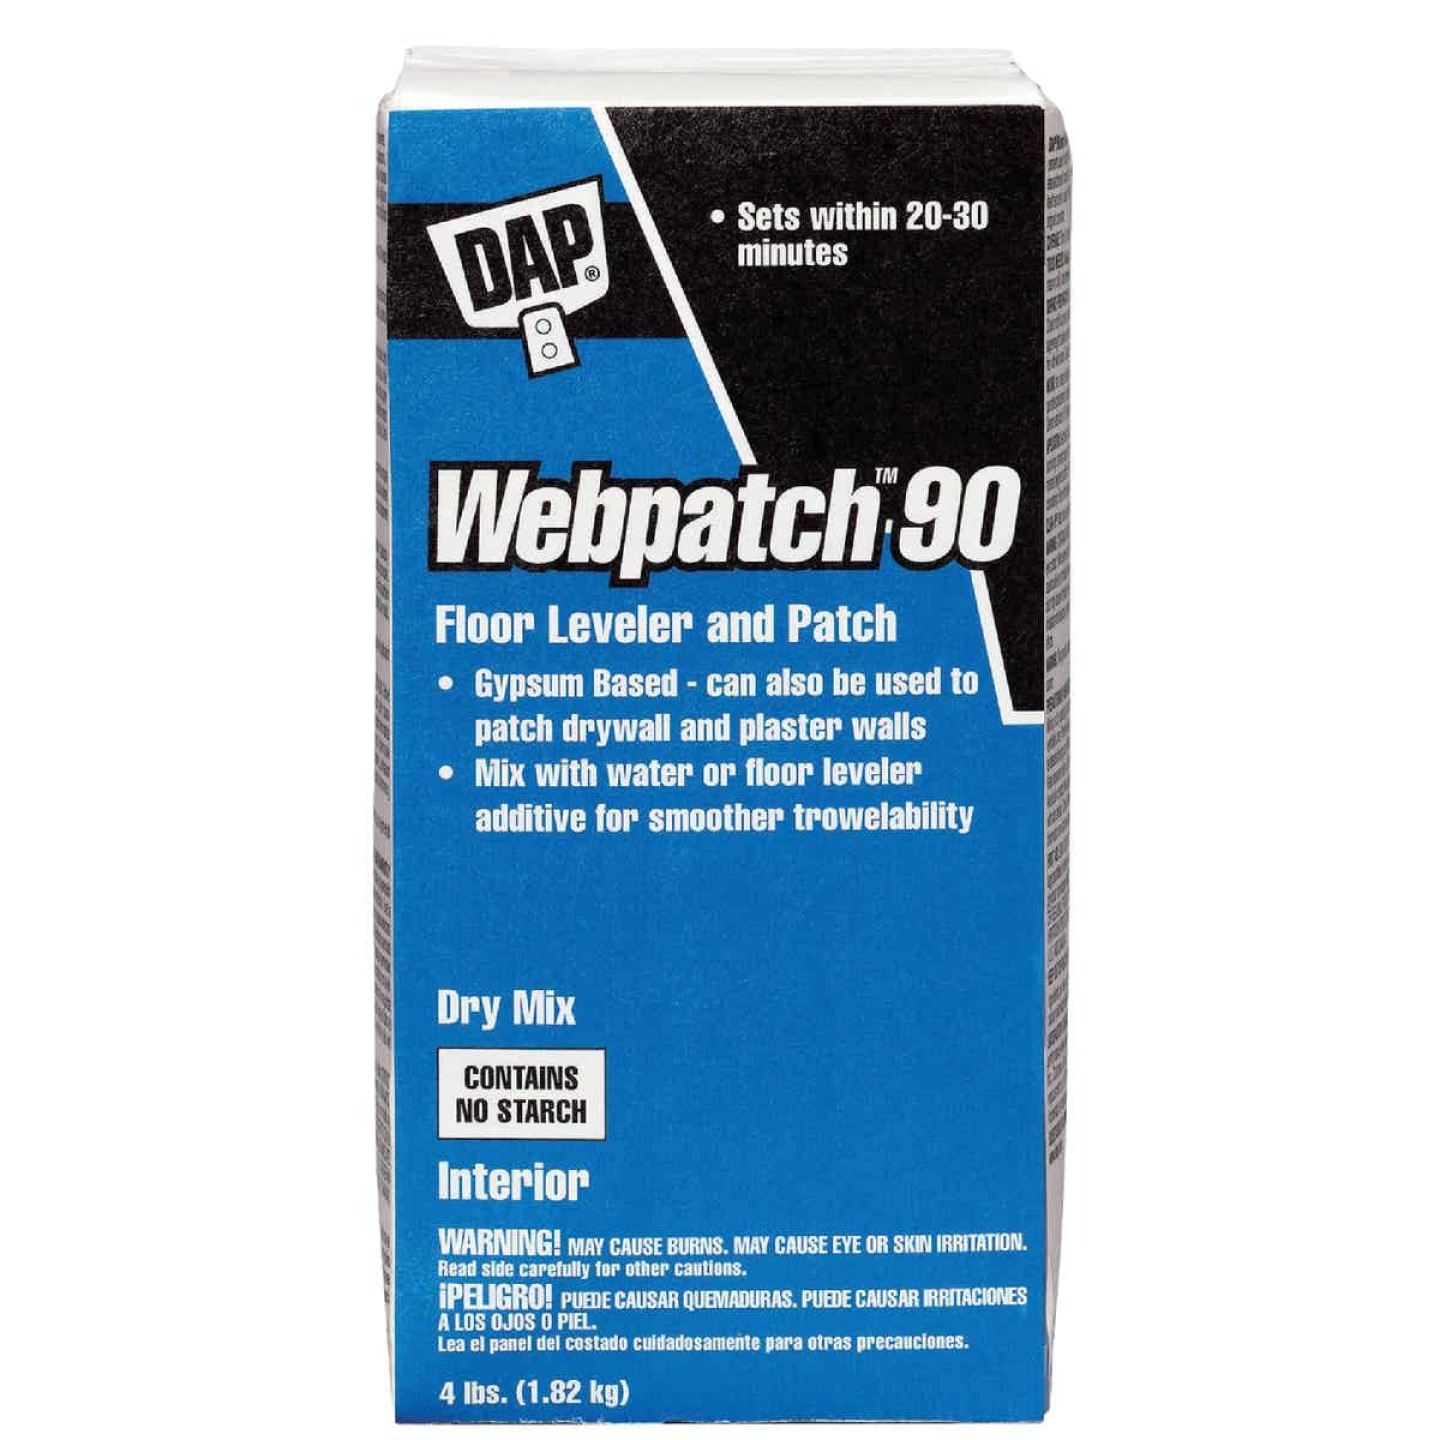 DAP Webpatch 90 Floor Leveler and Patch, Off White, 4 Lbs. Image 1